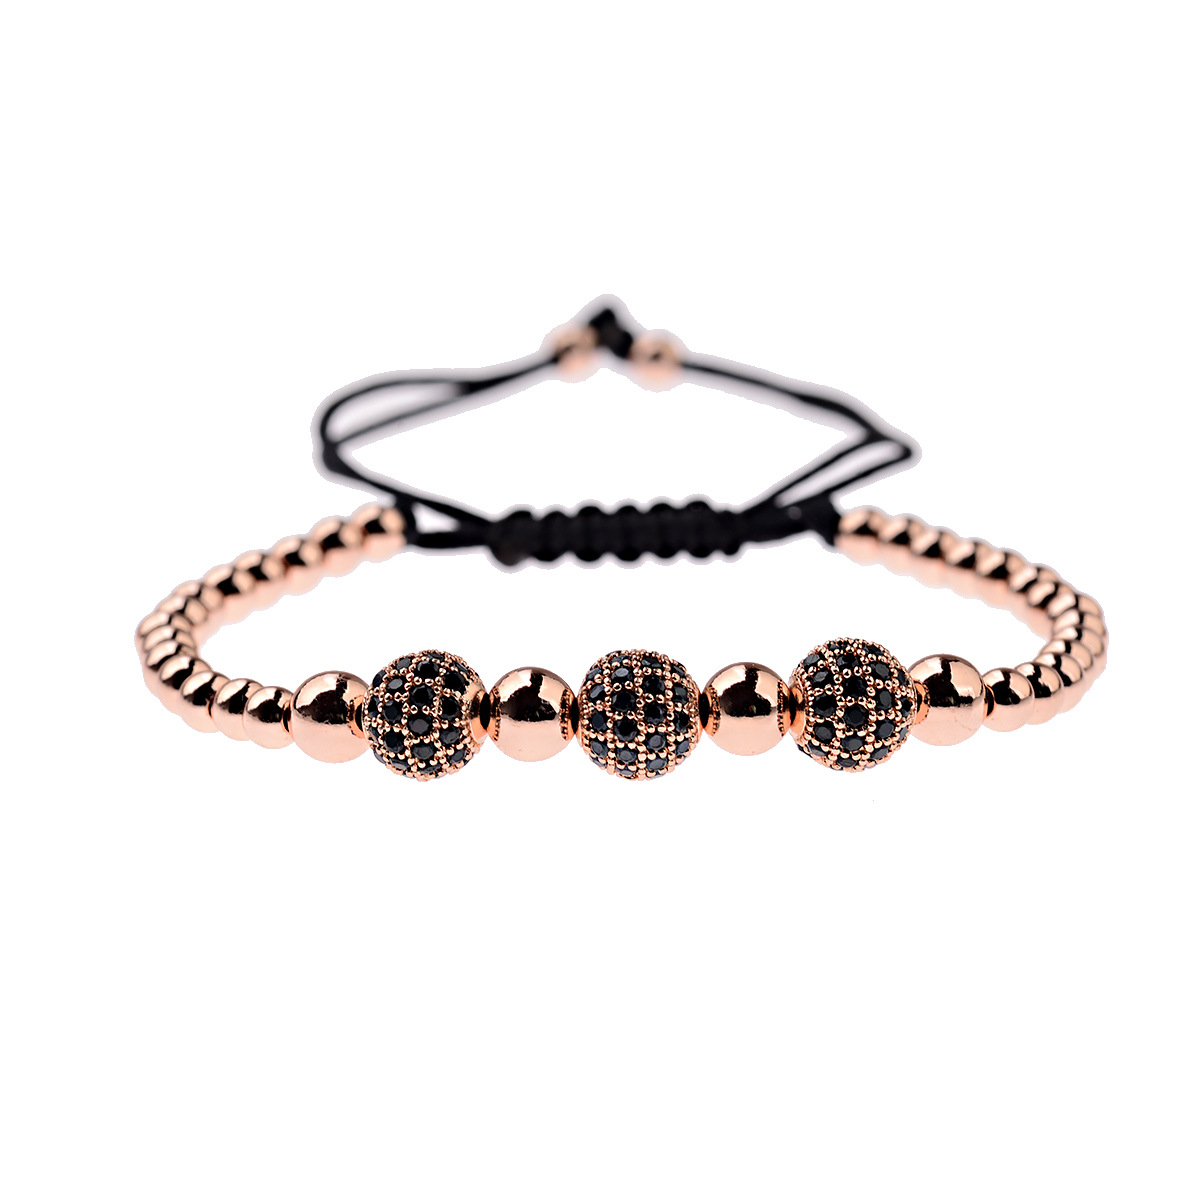 Wholesale fashion jewelry Gold Copper beads Beaded Rose gold plating diamond Ball Charm adjustable bracelet for men